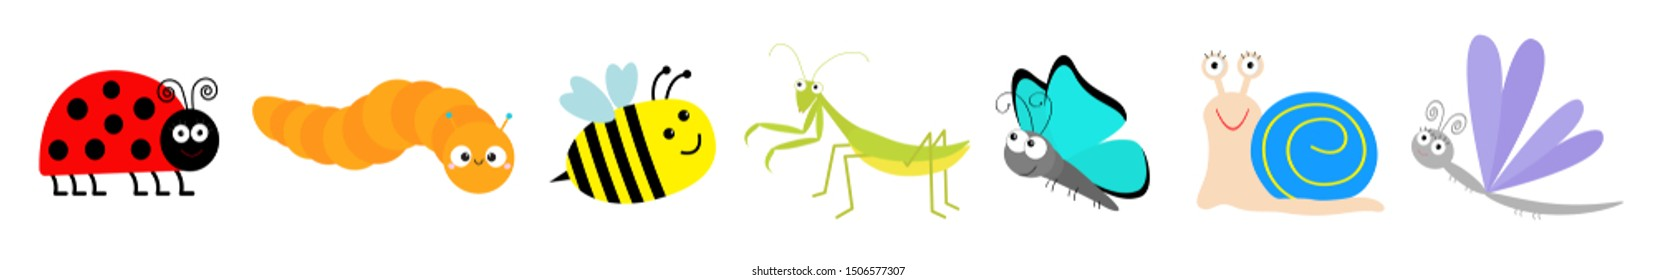 Cute cartoon insect set line. Mantis, ladybug, ladybird, bee, dragonfly, butterfly caterpillar snail. White background Isolated Vector illustration